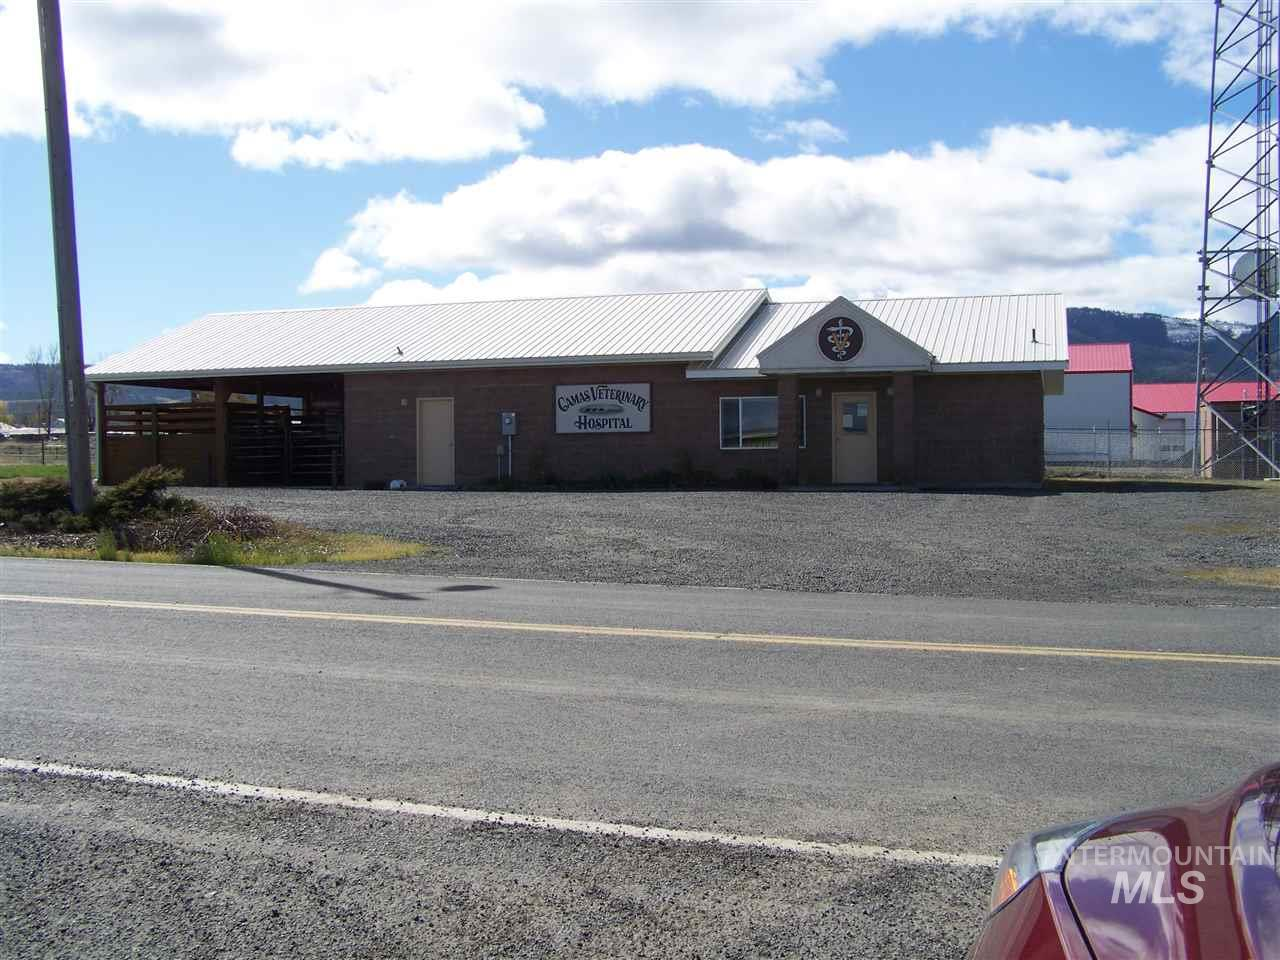 Located in a commercial area of Grangeville w/ easy access along the truck route this property has tremendous potential. It has 3306 sq ft of space for your future business & sits on a lot size of nearly 1 acre. This building was the local Vet Hospital which the area will dearly miss. But with lots of parking area available & a well-built office building, the potential options for a new business is endless.The owner would prefer an owner carry. Bring your business idea & let us help you build your future.